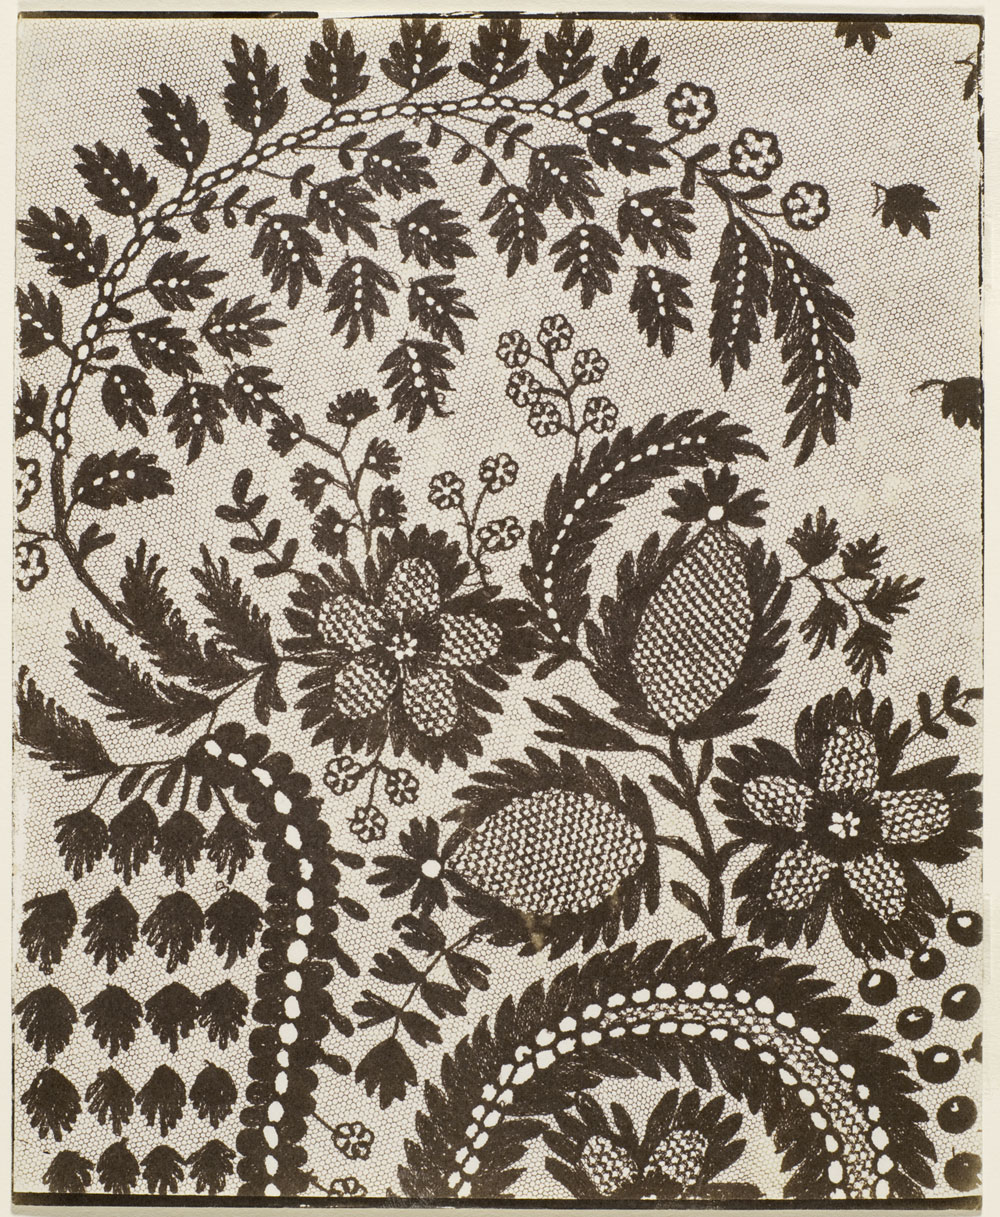 William Henry Fox Talbot<br />Lace<br />1841<br />Calotype<br />7 1/2 × 9 1/4 in. (19.05 × 23.5 cm)<br />The Marjorie and Leonard Vernon Collection, gift of The Annenberg Foundation and promised gift of Carol Vernon and Robert Turbin